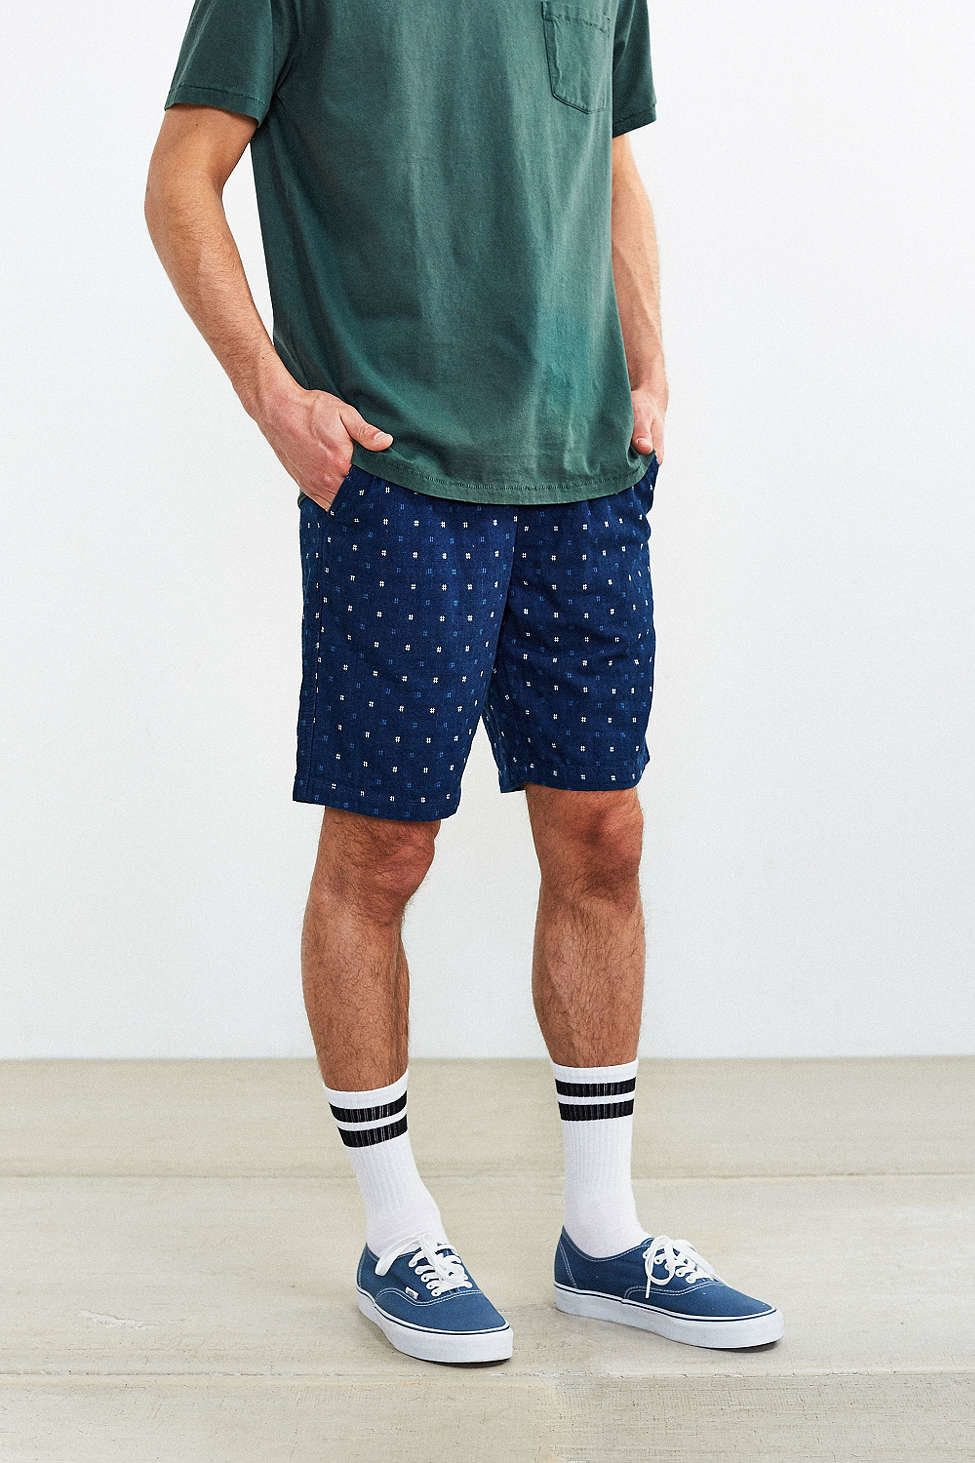 Wearing Shorts And Socks For Men